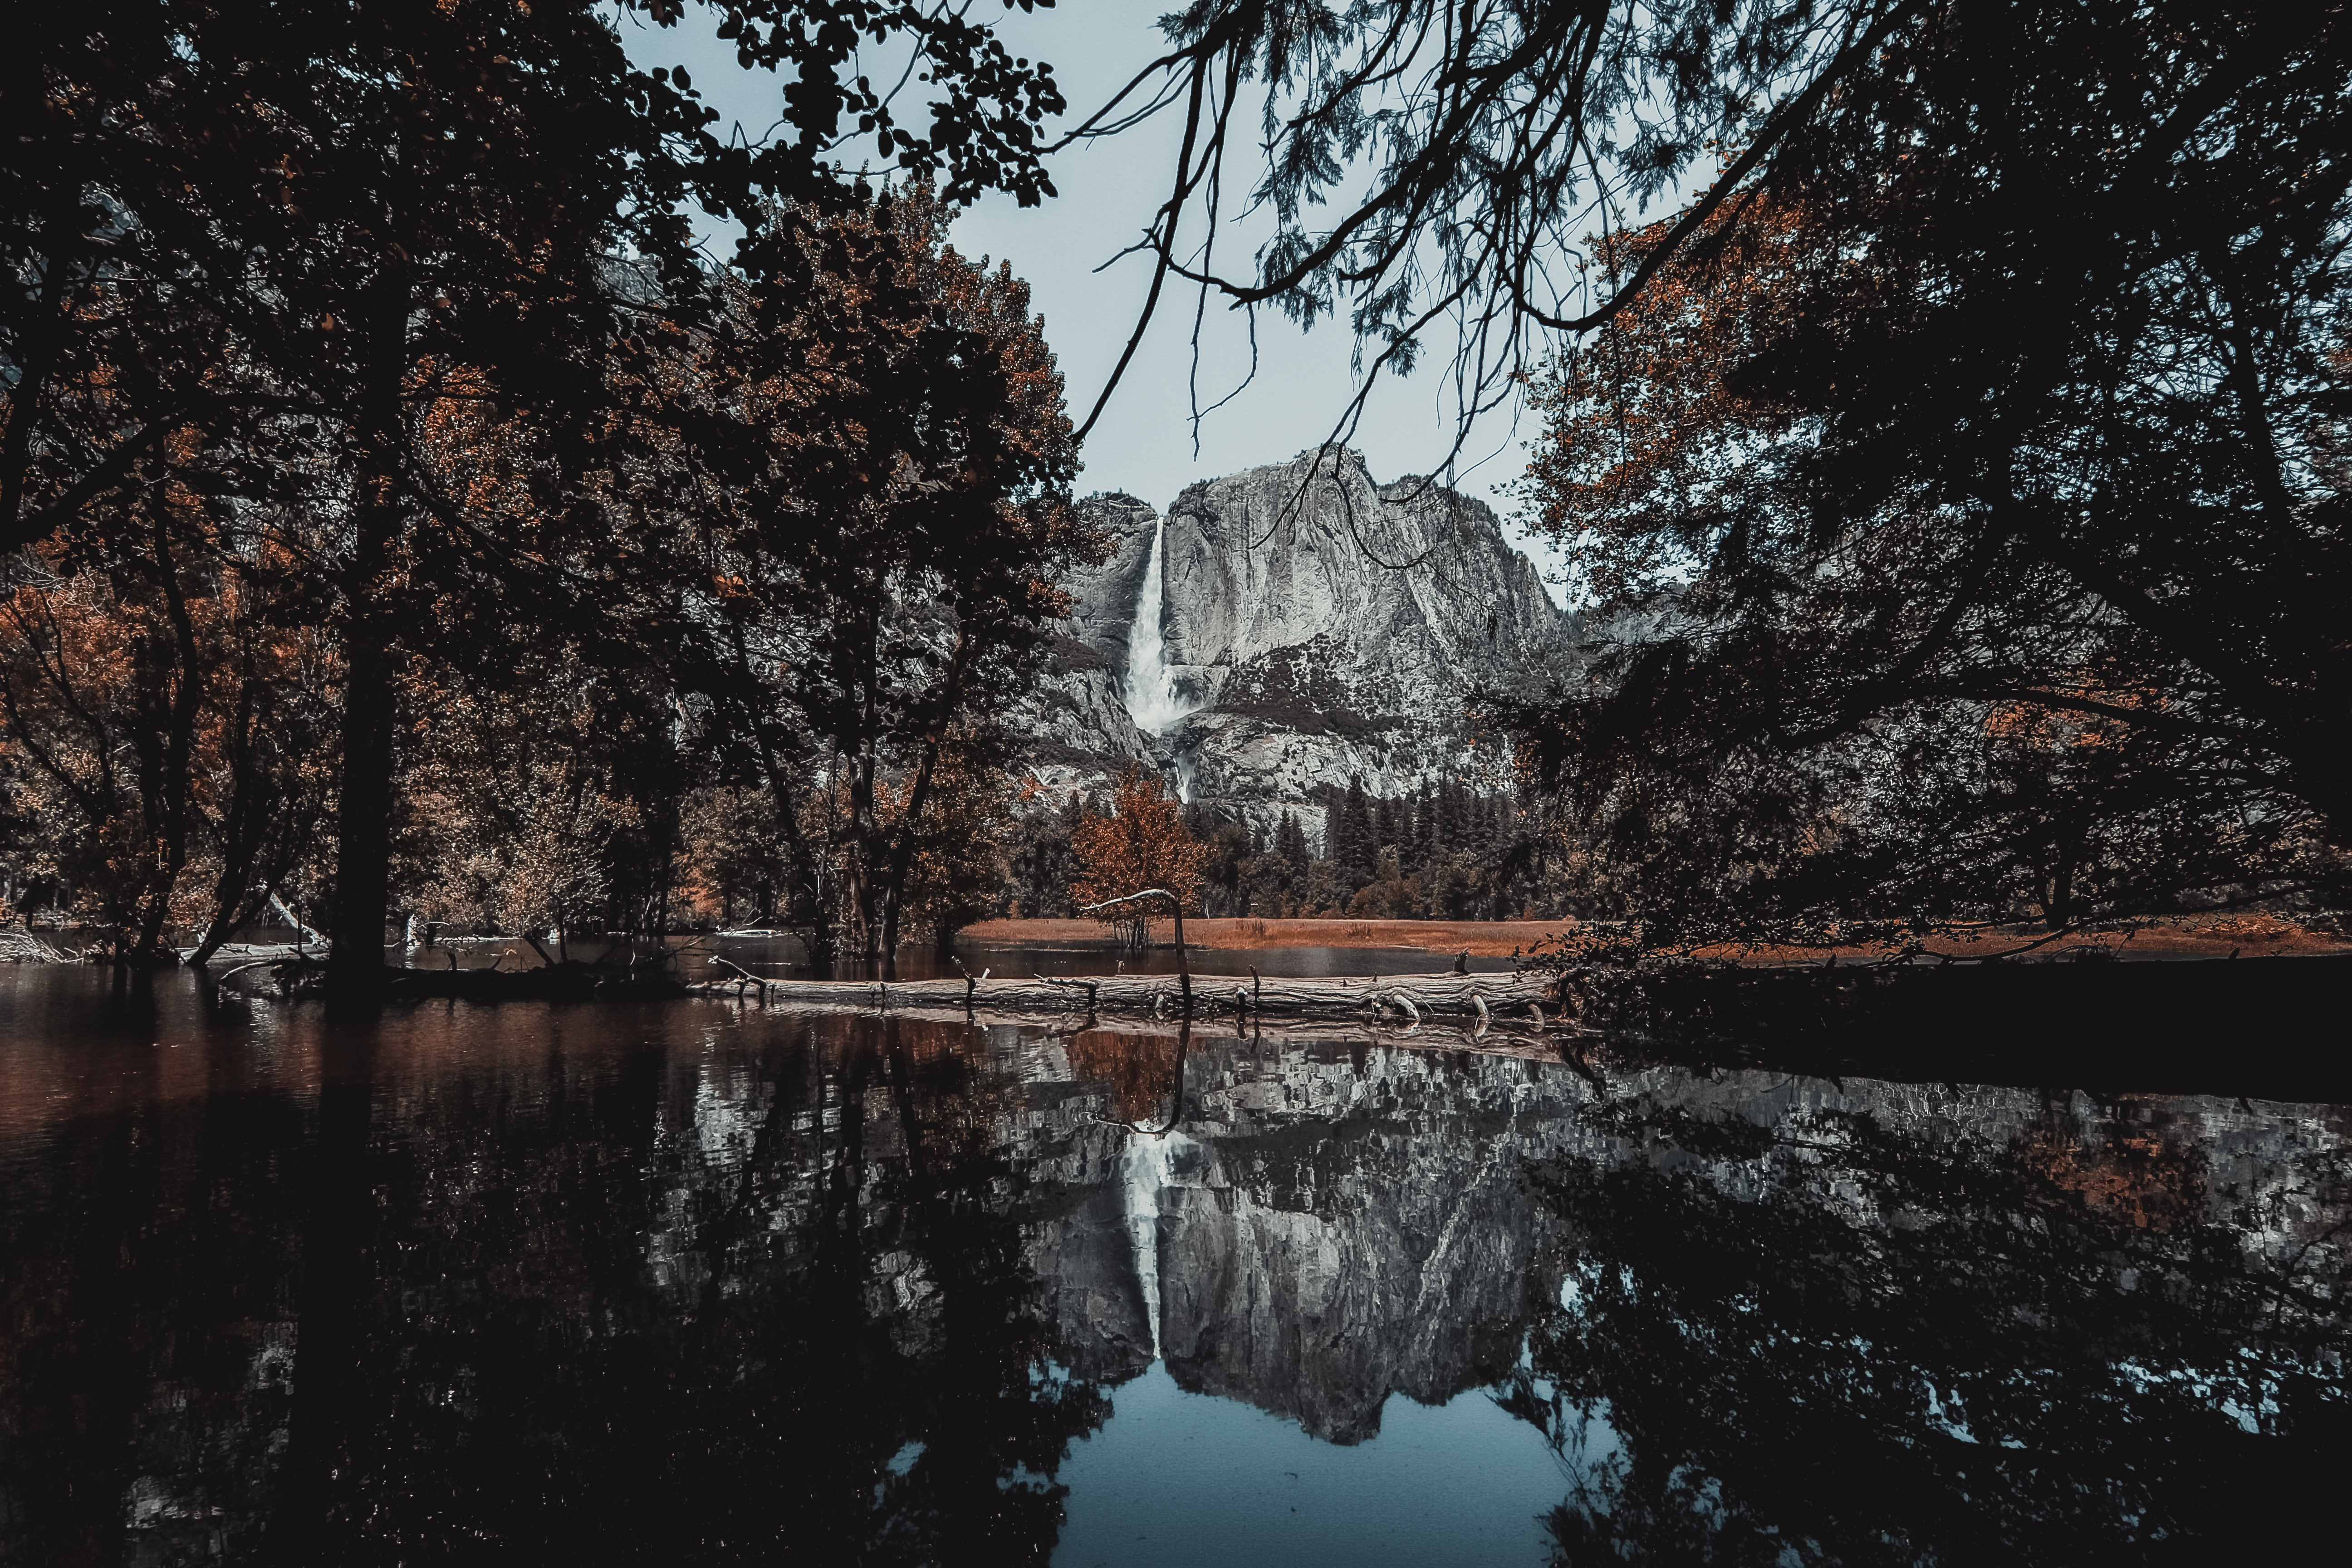 Find These Hd Nature Wallpapers With Beautiful Trees Lakes And Mountains These Stunning Nature Wallpapers And Images Are Free To Download For Your Mac